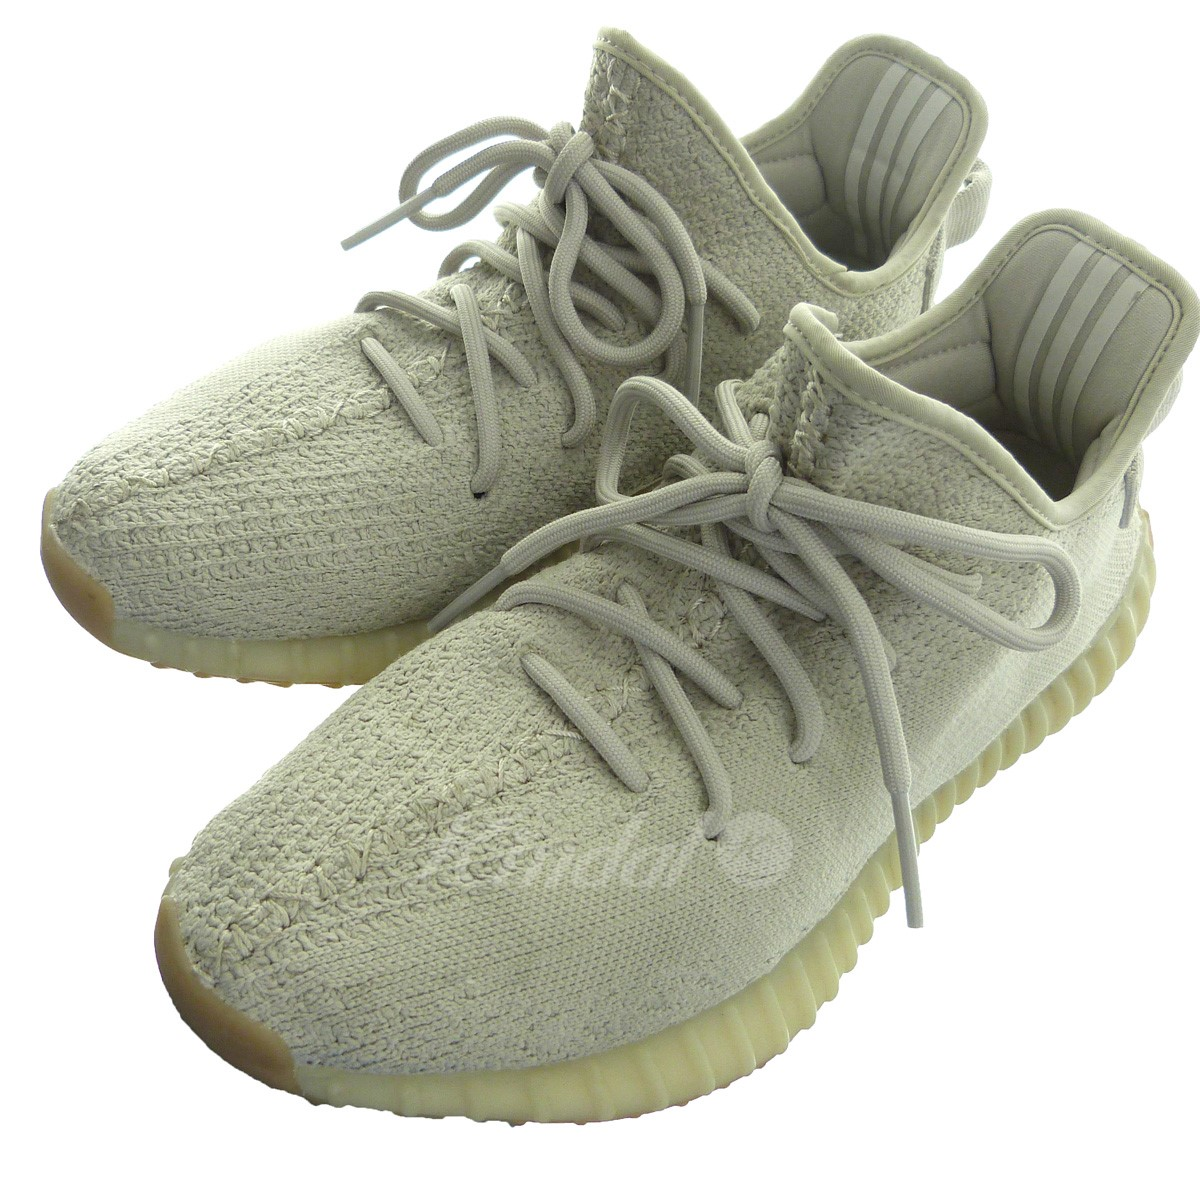 0bec27c25ae adidas originals by Kanye West